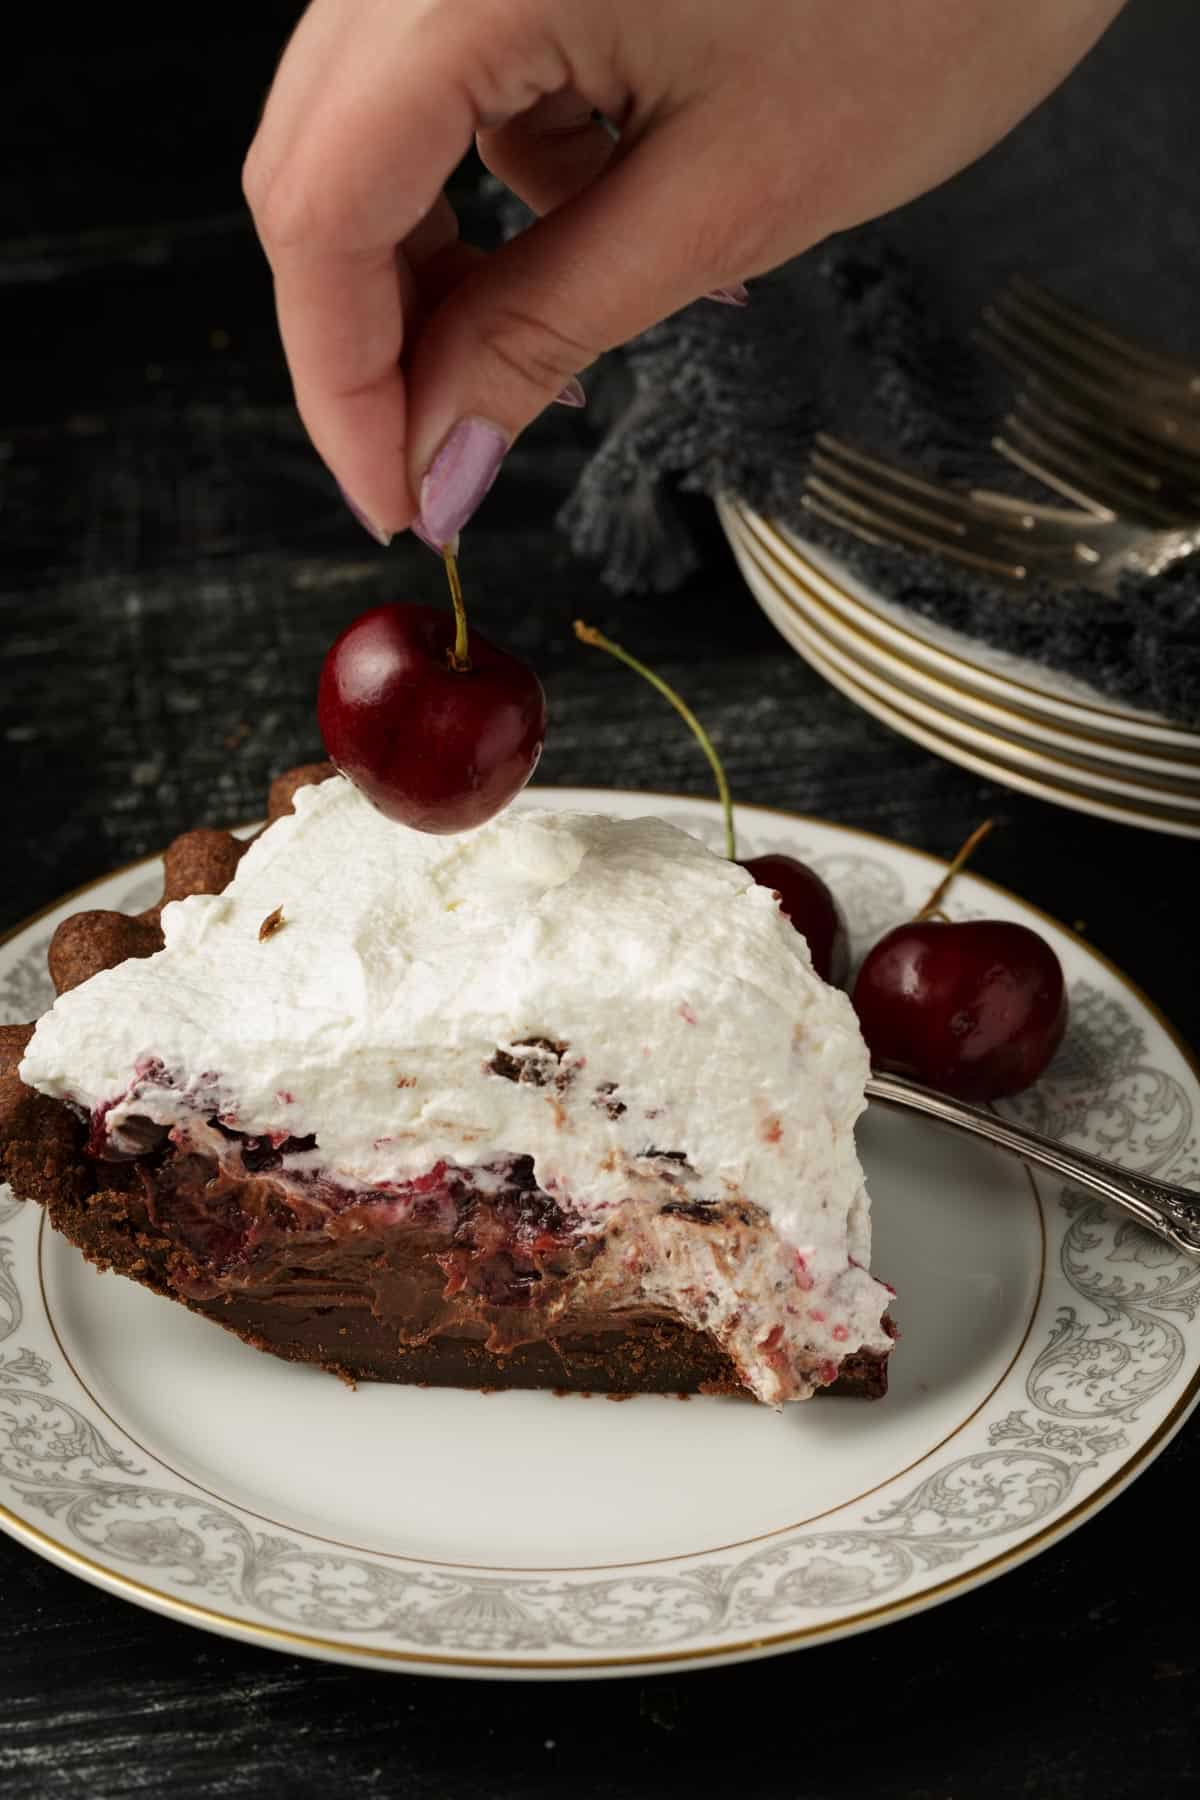 A cherry being added to the top of a slice of black forest pie.